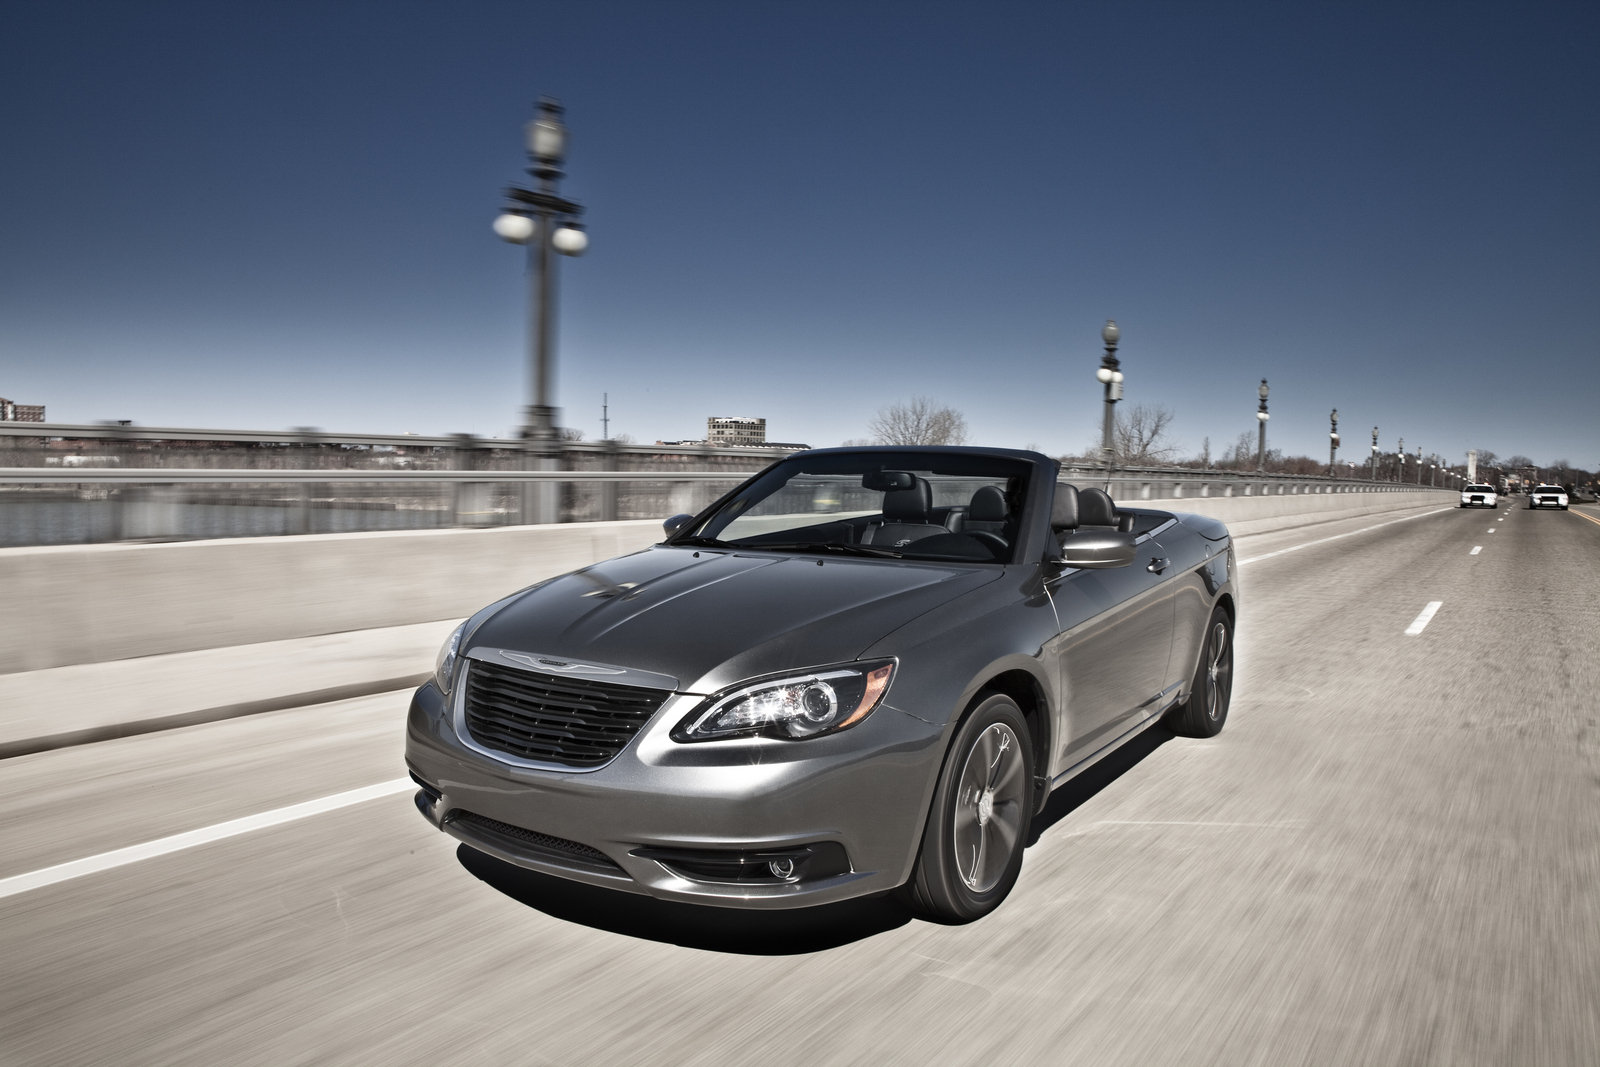 2013 chrysler 200 convertible review top speed. Black Bedroom Furniture Sets. Home Design Ideas